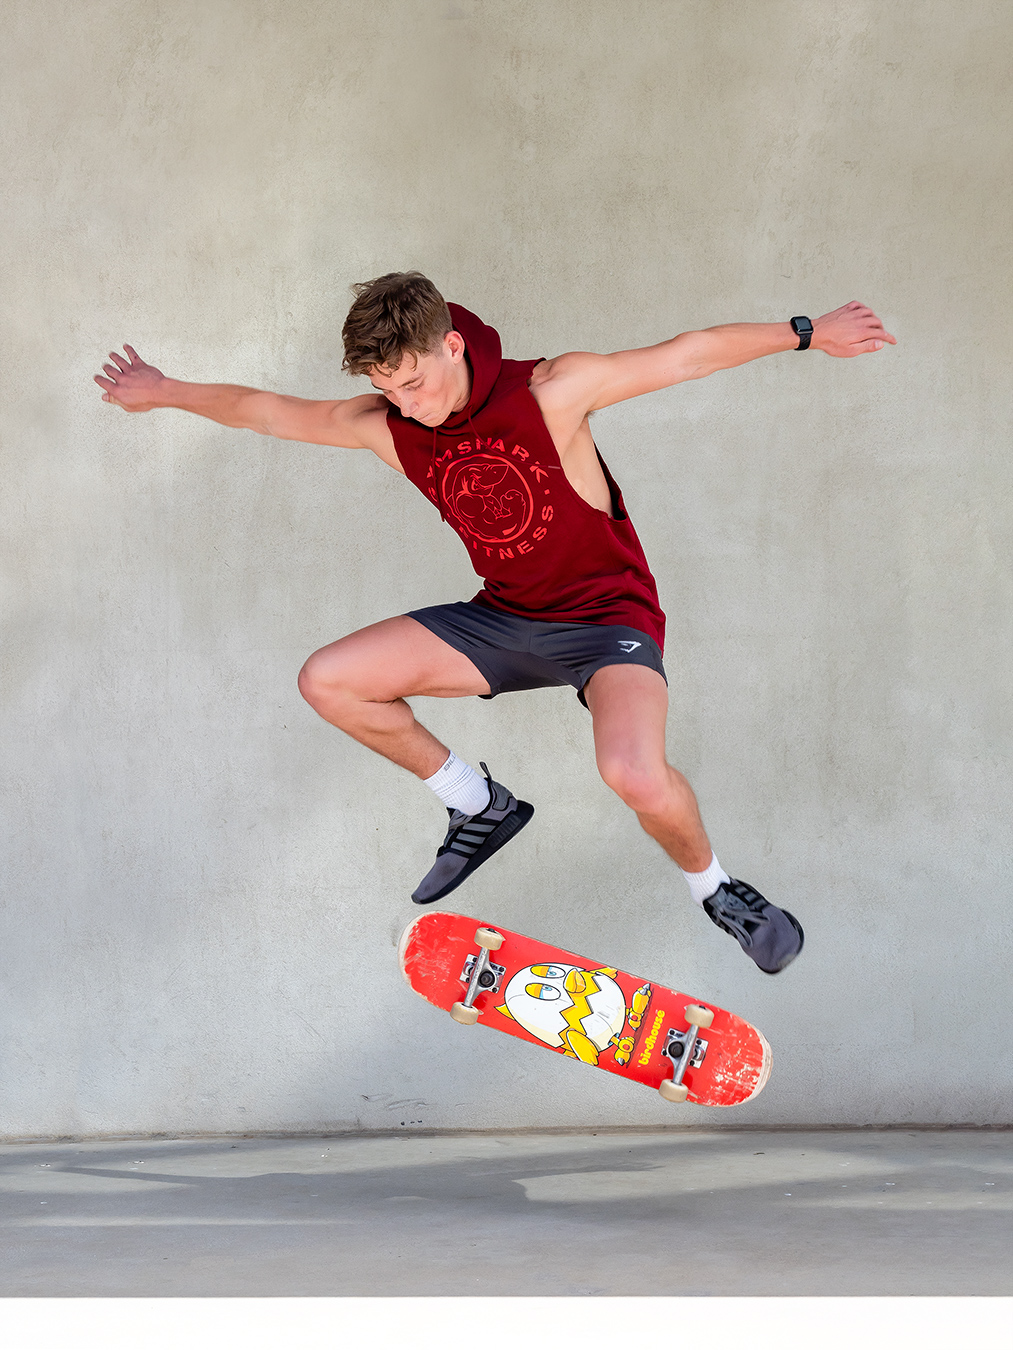 Adelaides young up and coming fitness model Ryan flipping a skate board